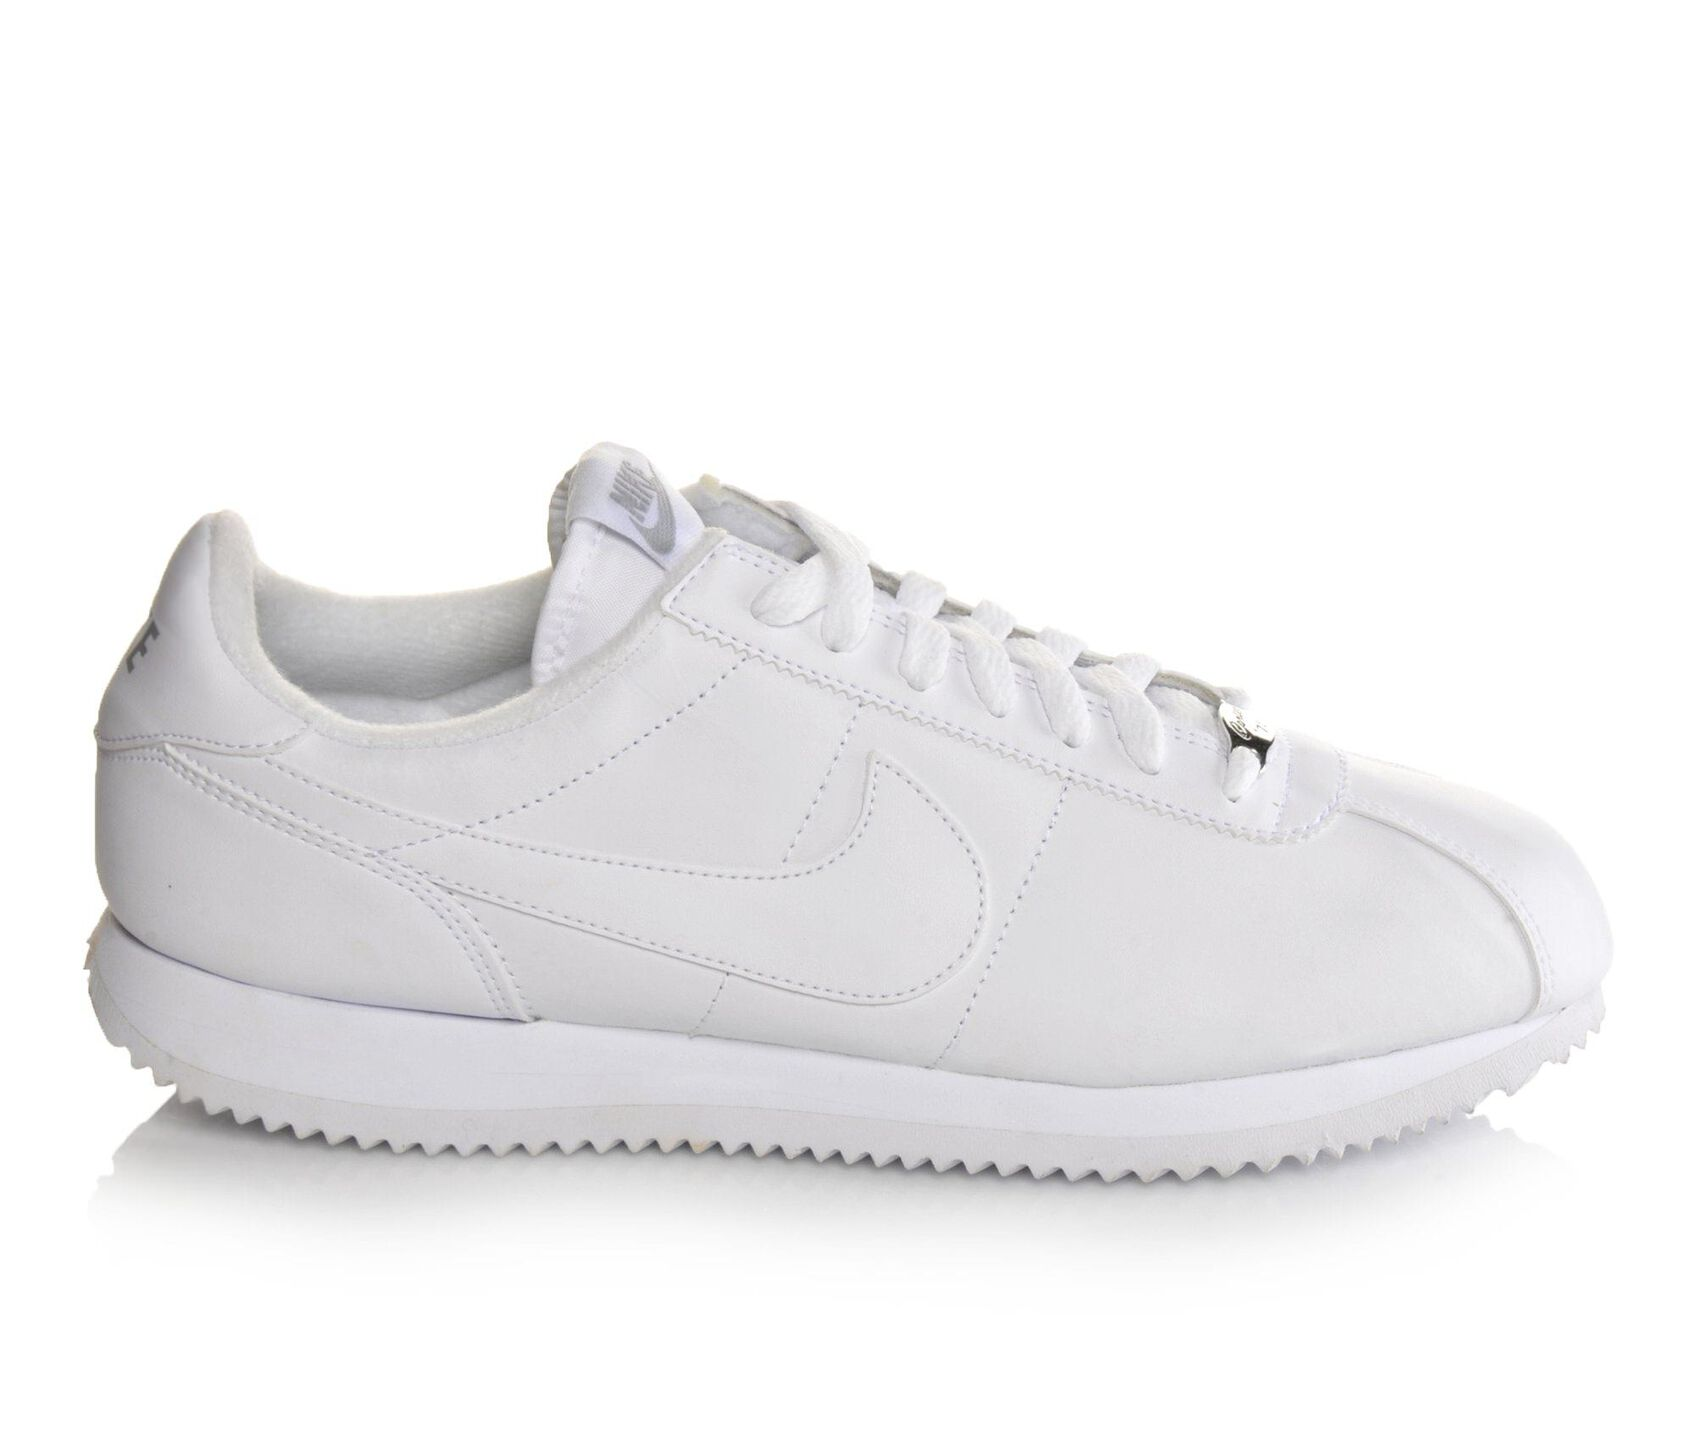 designer fashion where to buy new lower prices Men's Nike Cortez Basic Leather Sneakers